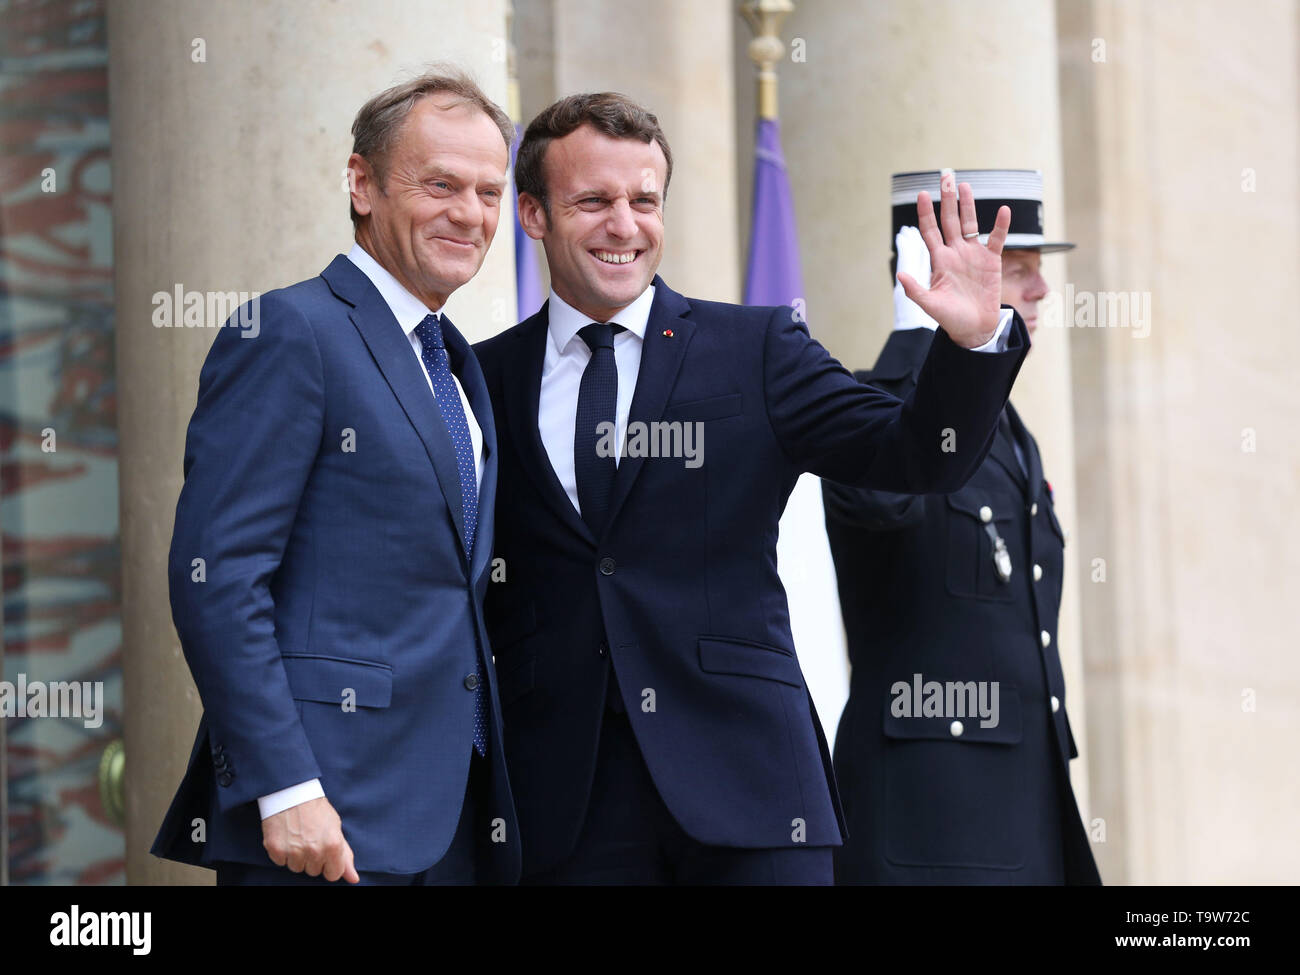 Paris, France. 20th May, 2019. French President Emmanuel Macron (C) meets with visiting European Council President Donald Tusk at the Elysee Palace in Paris, France, May 20, 2019. Credit: Gao Jing/Xinhua/Alamy Live News - Stock Image